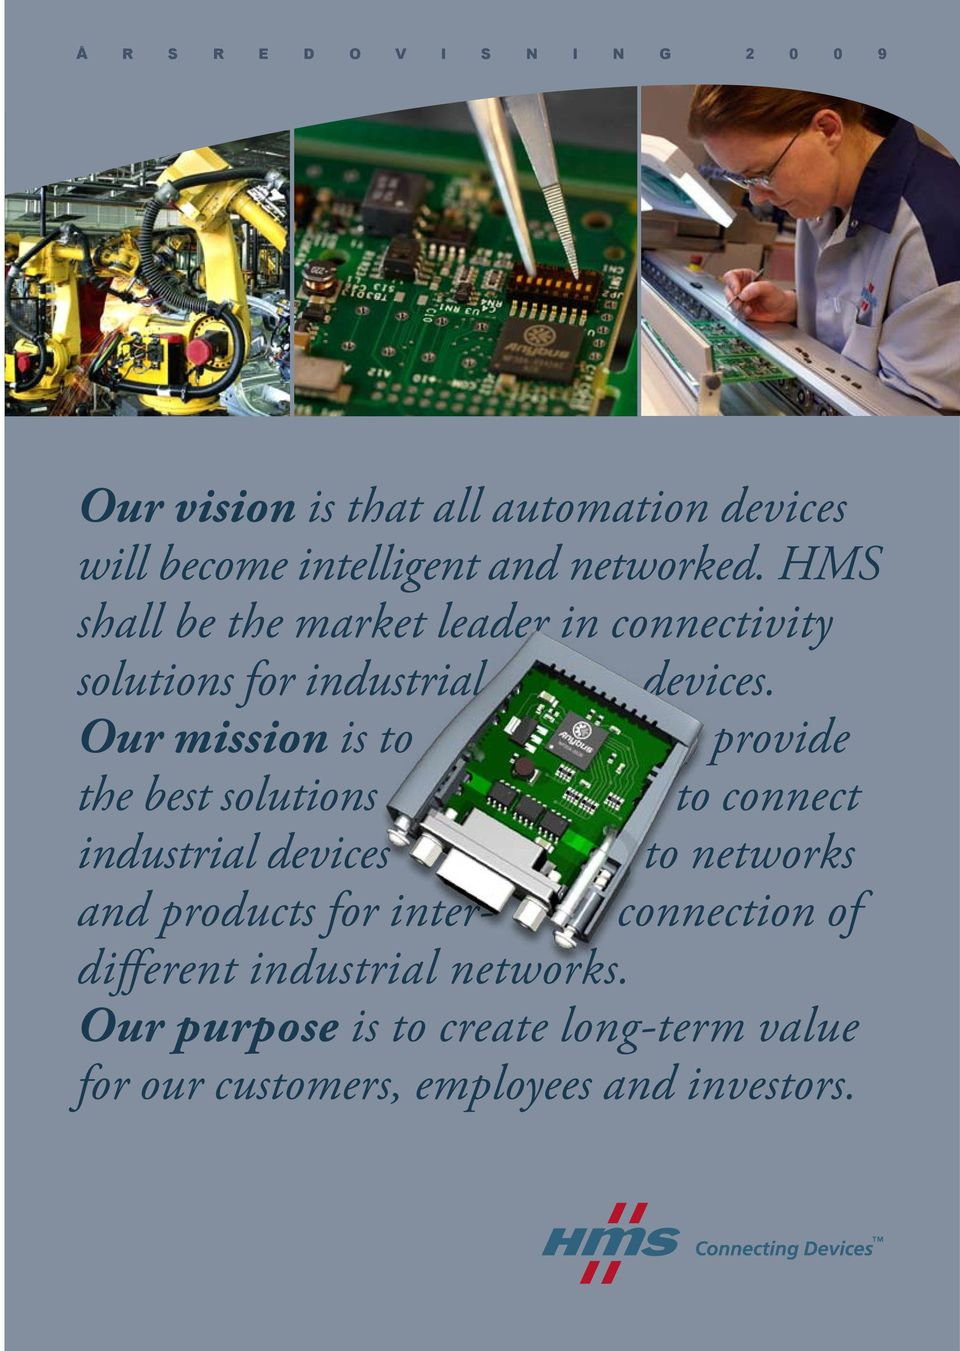 Our mission is to provide the best solutions to connect industrial devices to networks and products for